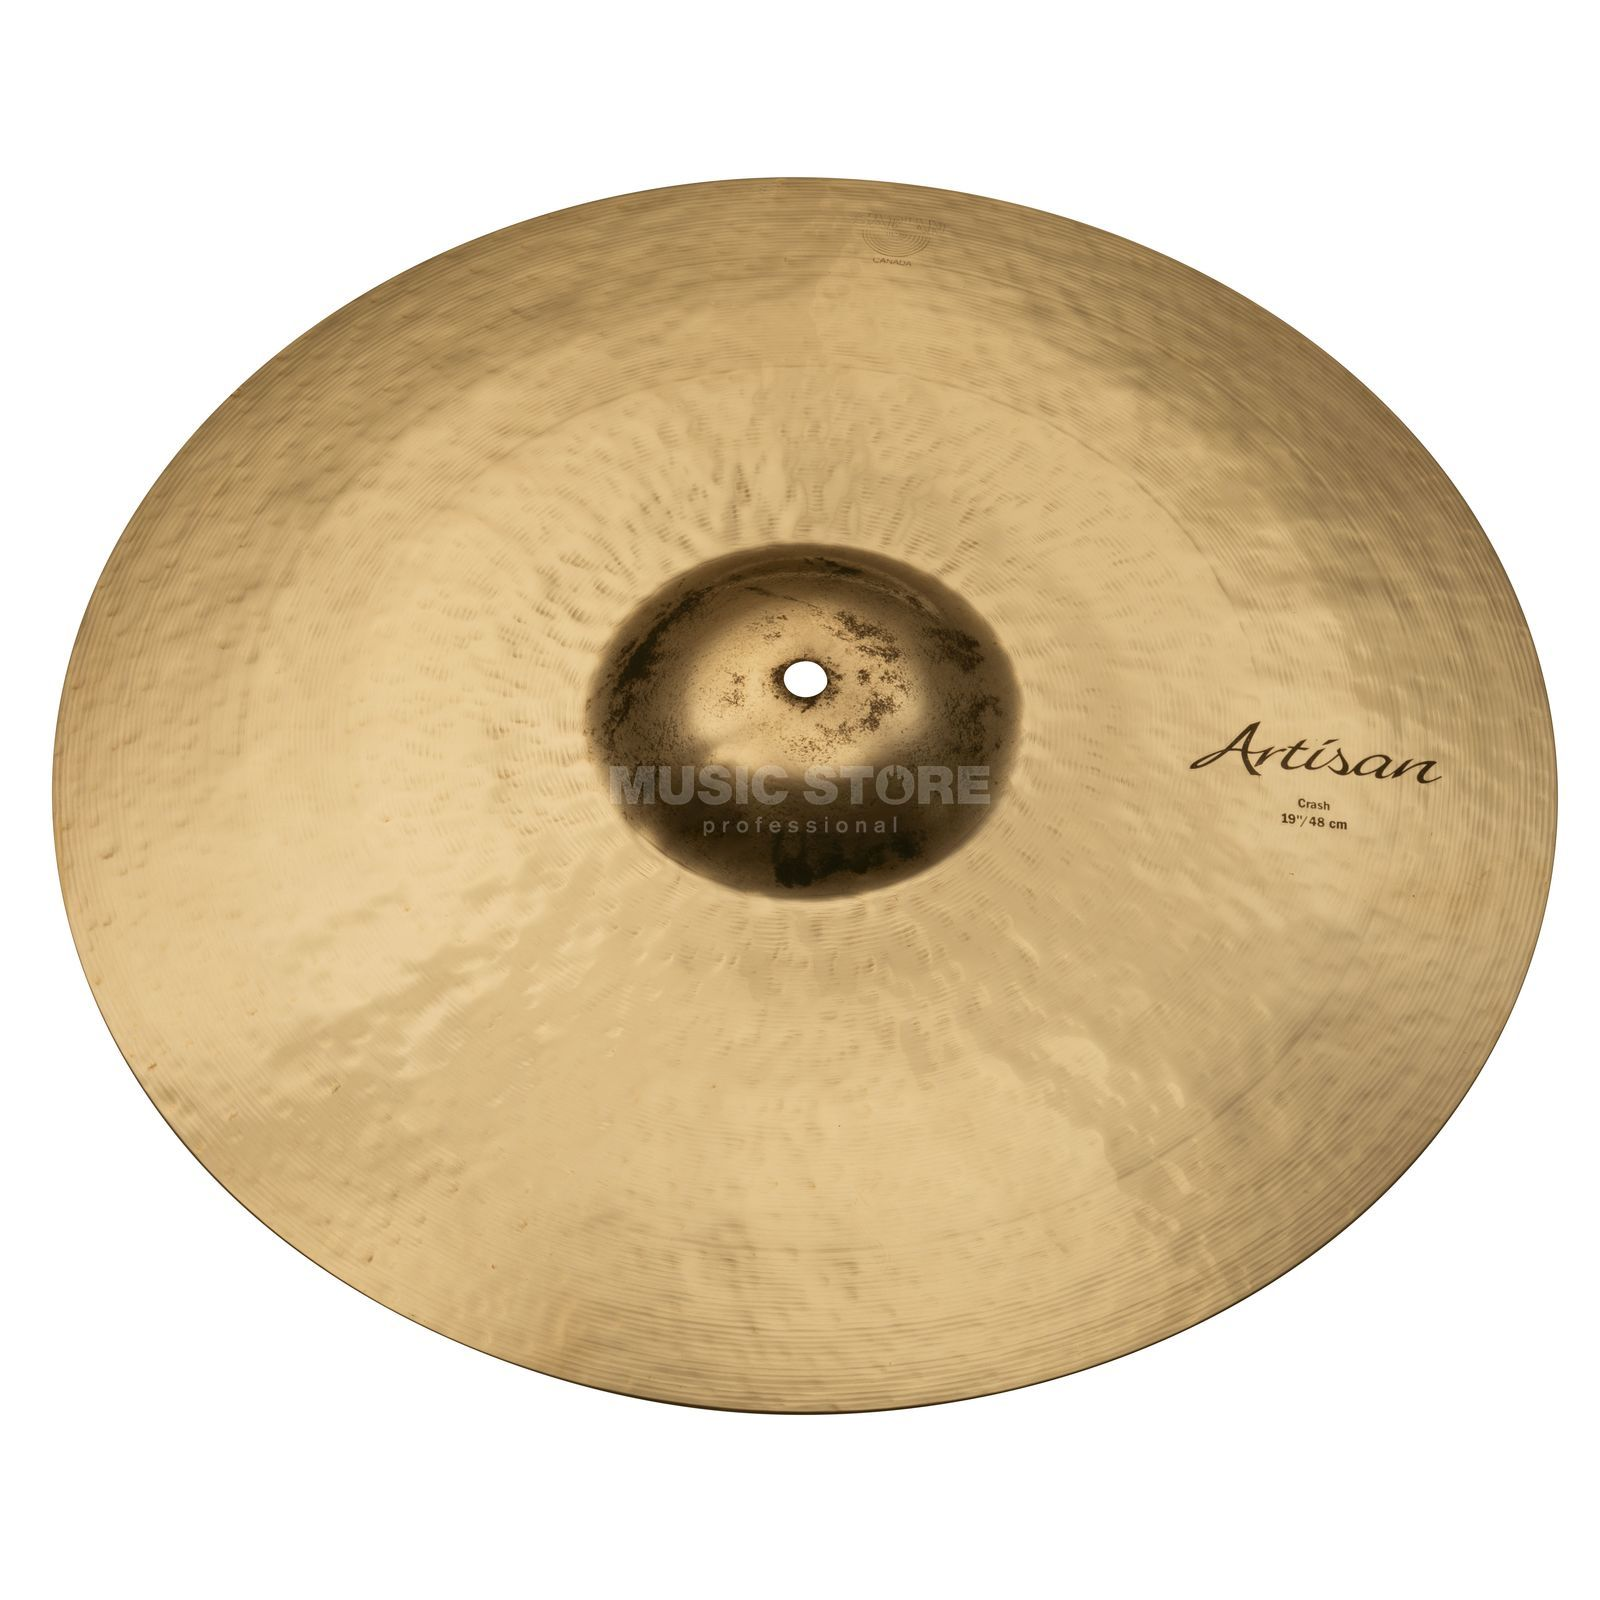 "Sabian Artisan Thin Crash 19"", Brilliant Finish Produktbild"